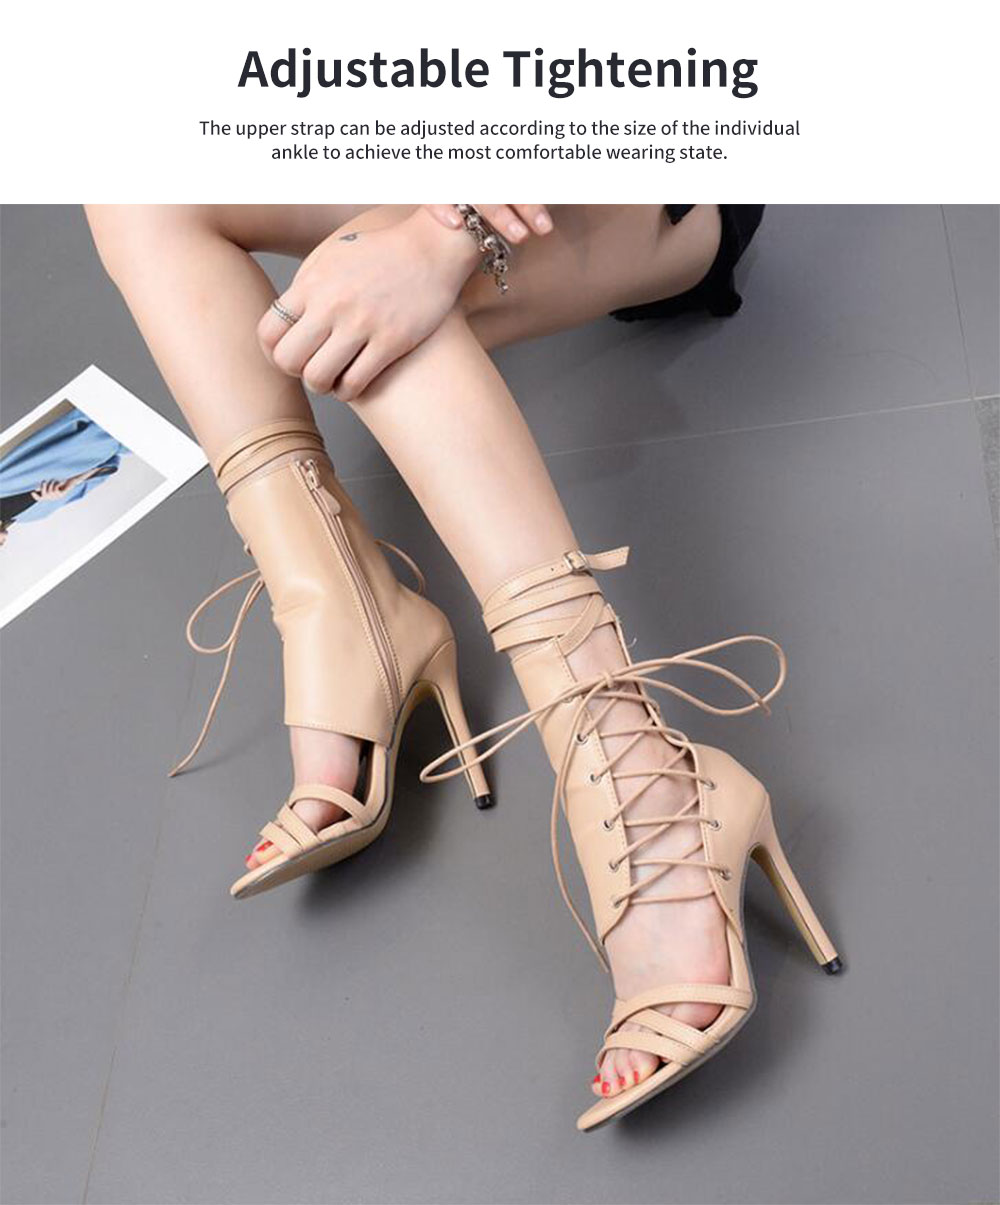 Large Strap Buckle High Heel Boots, Roman Style Fashionable Sexy Boots for Women 3